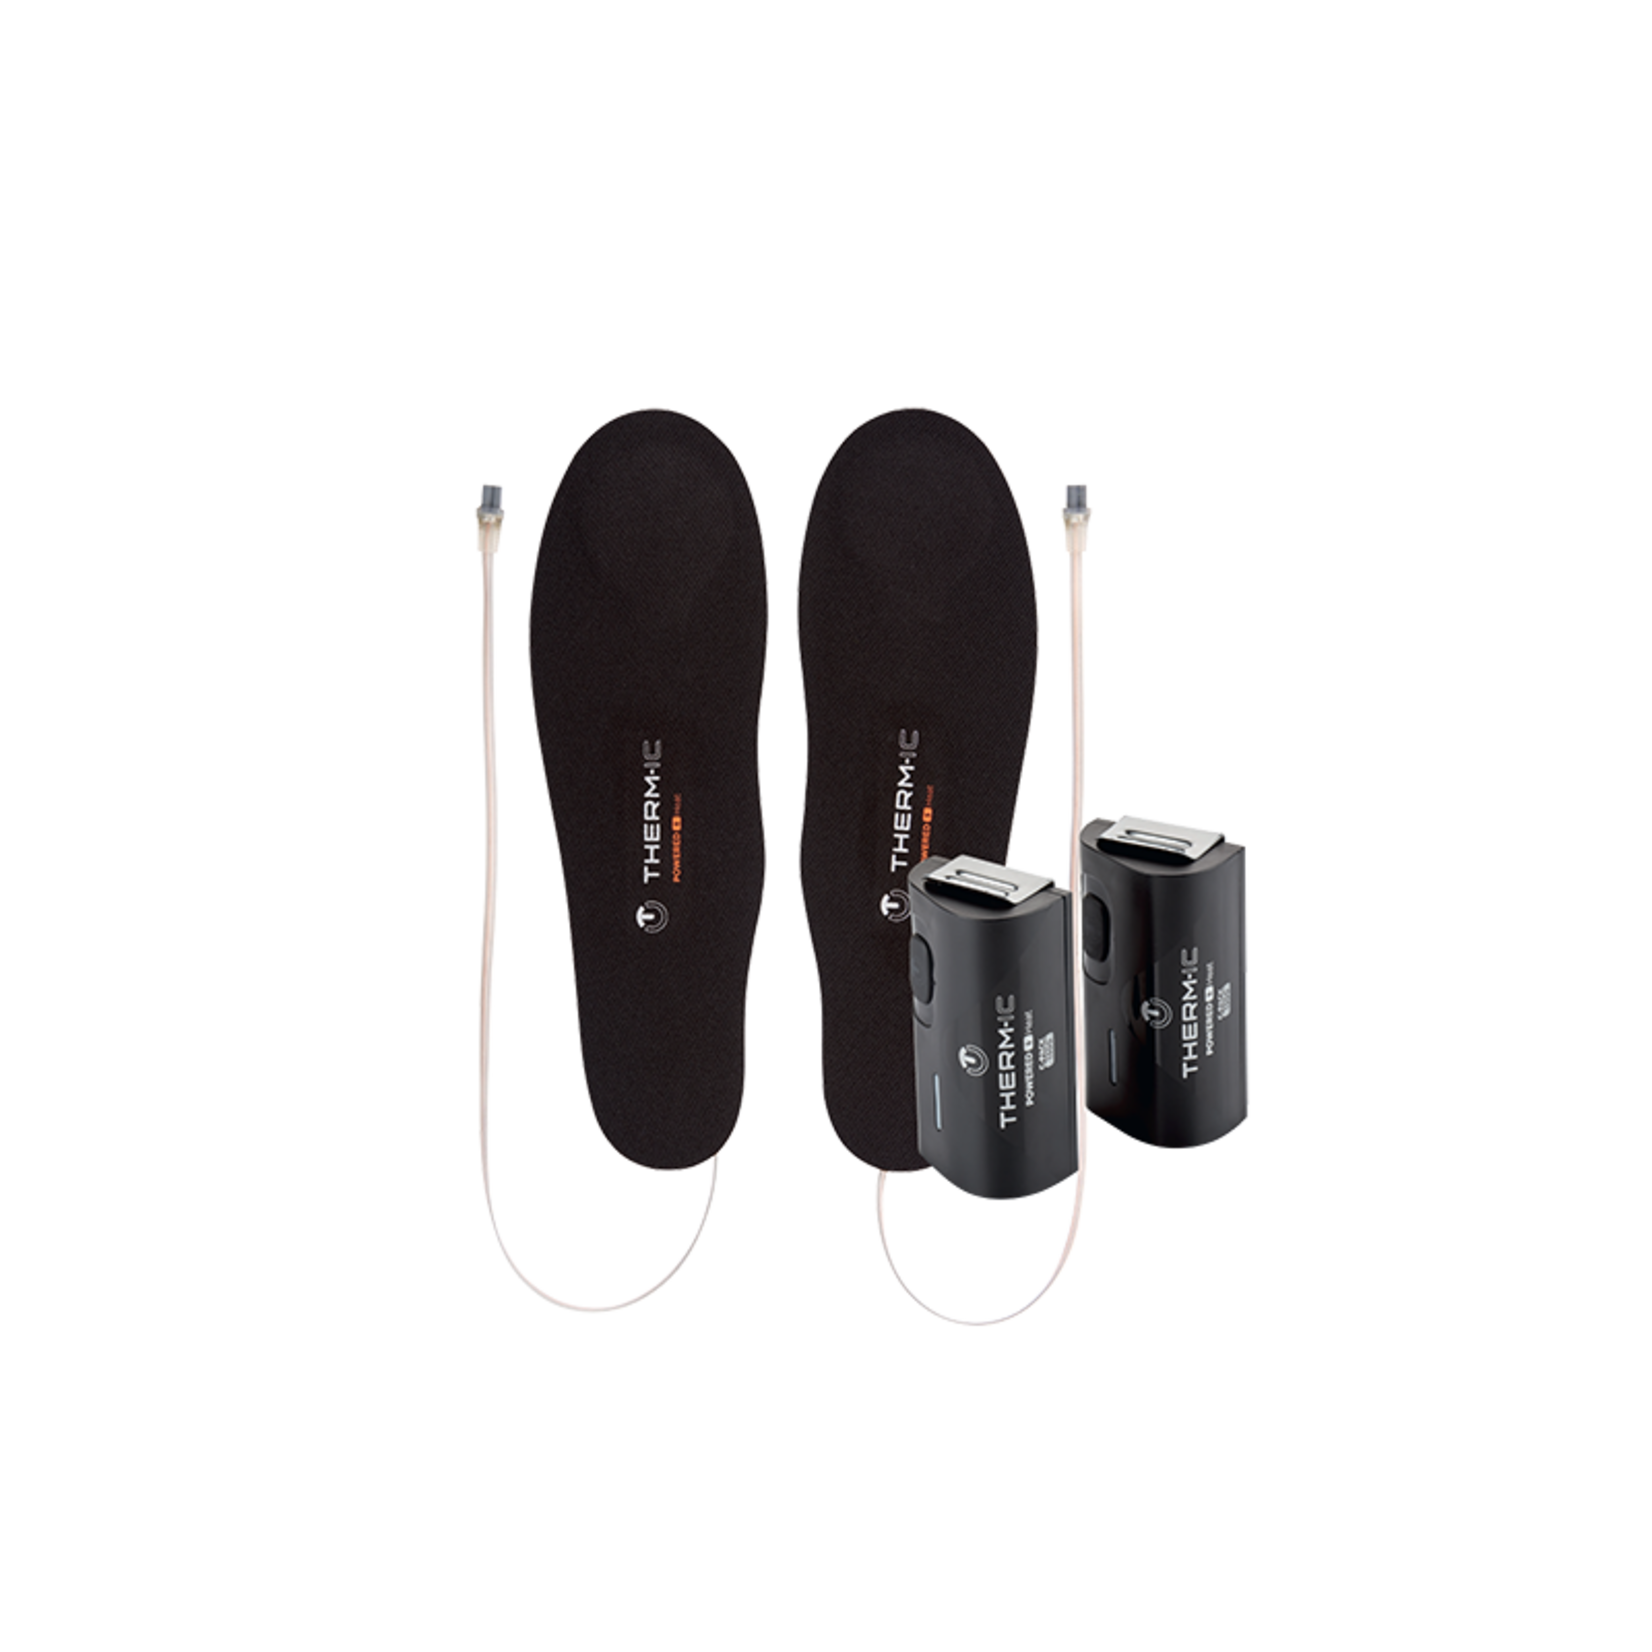 Semelles Therm-ic Heated Insoles Kit - Unisexe